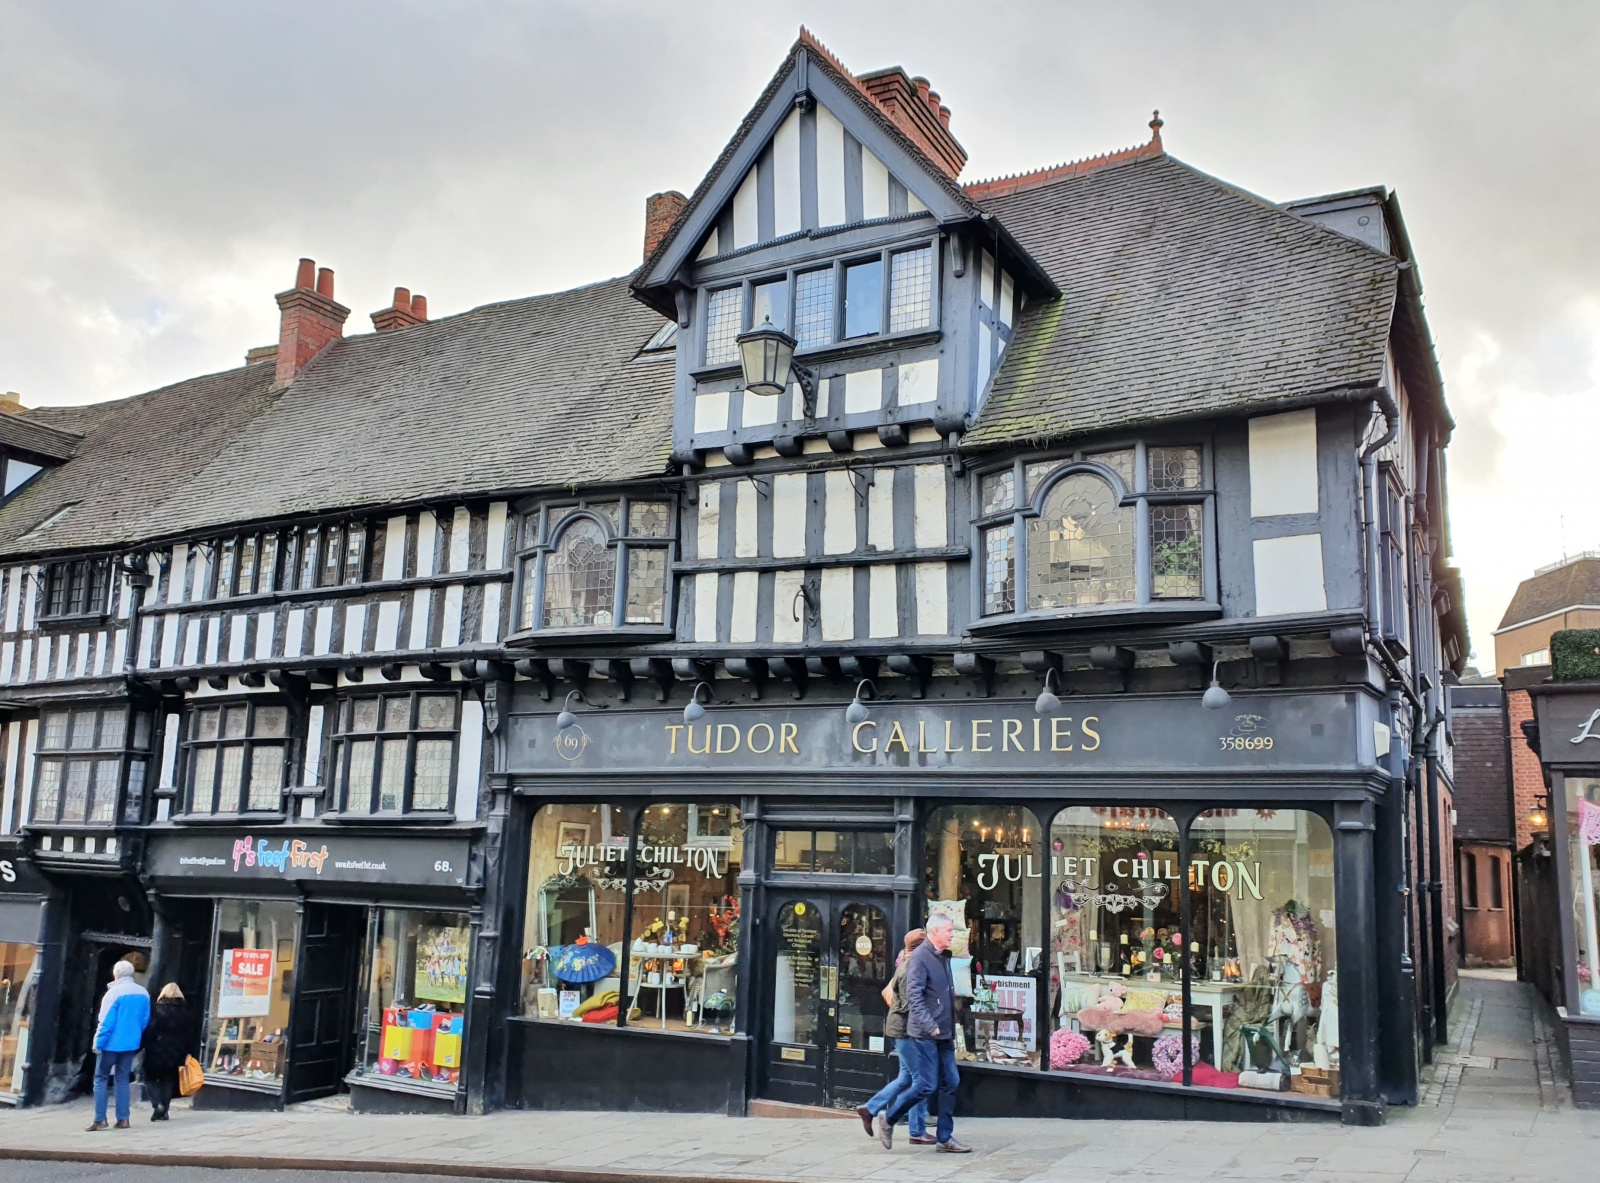 Tudor Galleries, 69 Wyle Cop, Shrewsbury, Shropshire